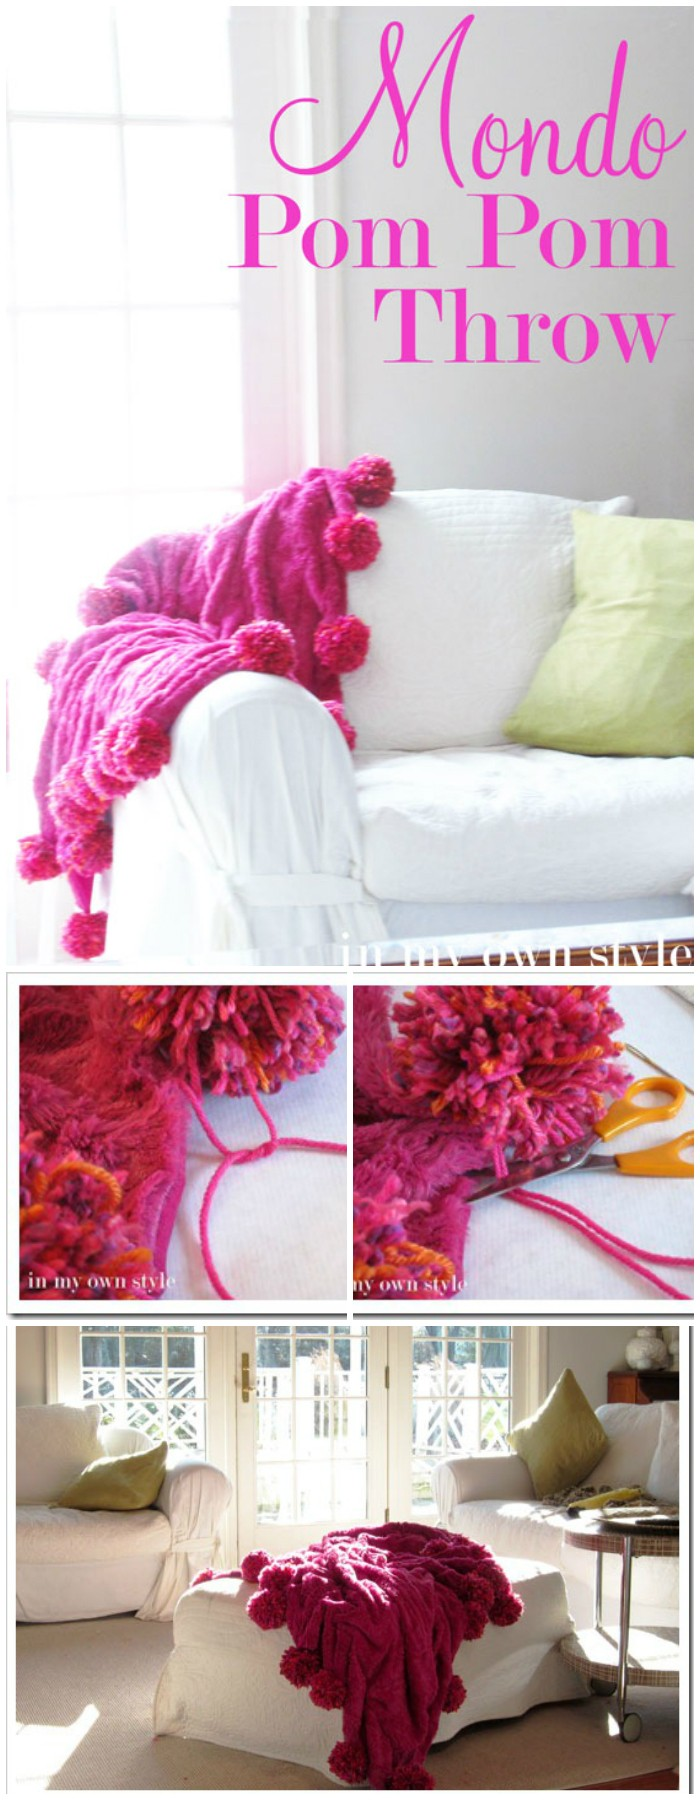 Pom Pom Throw DIY Home Decor Projects To Make Your Home Precious